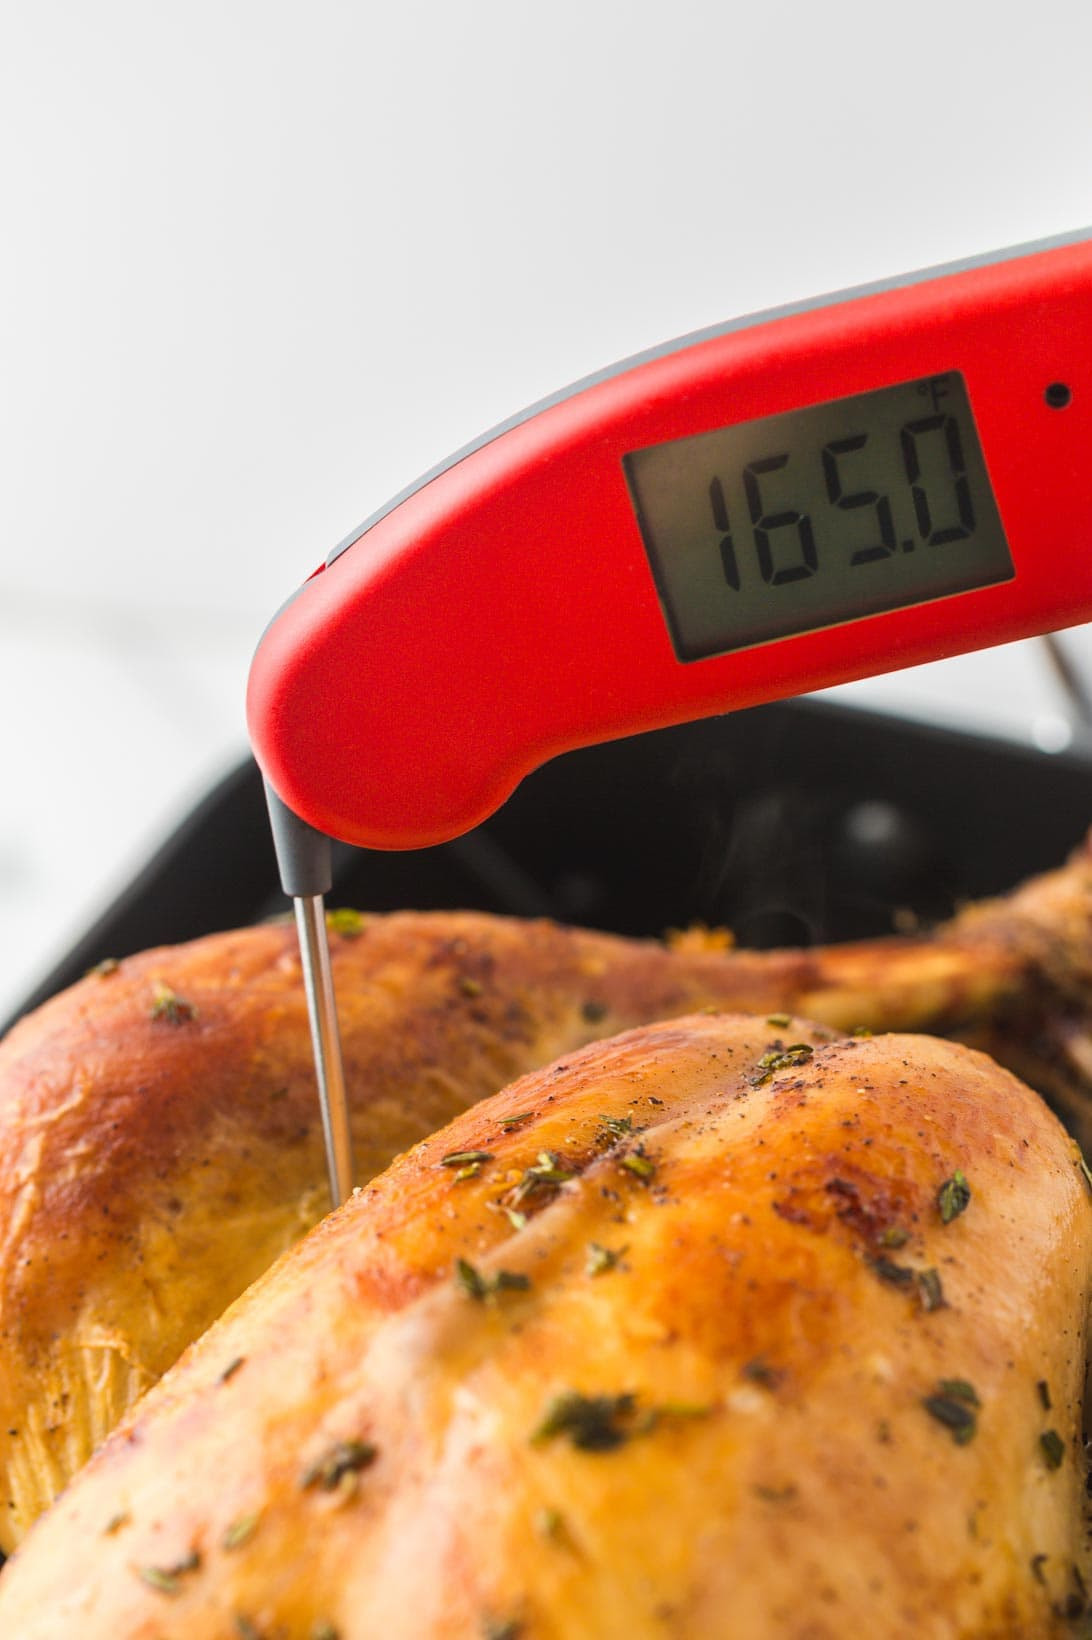 Checking the turkey temperature with Thermapen, registering 165°F